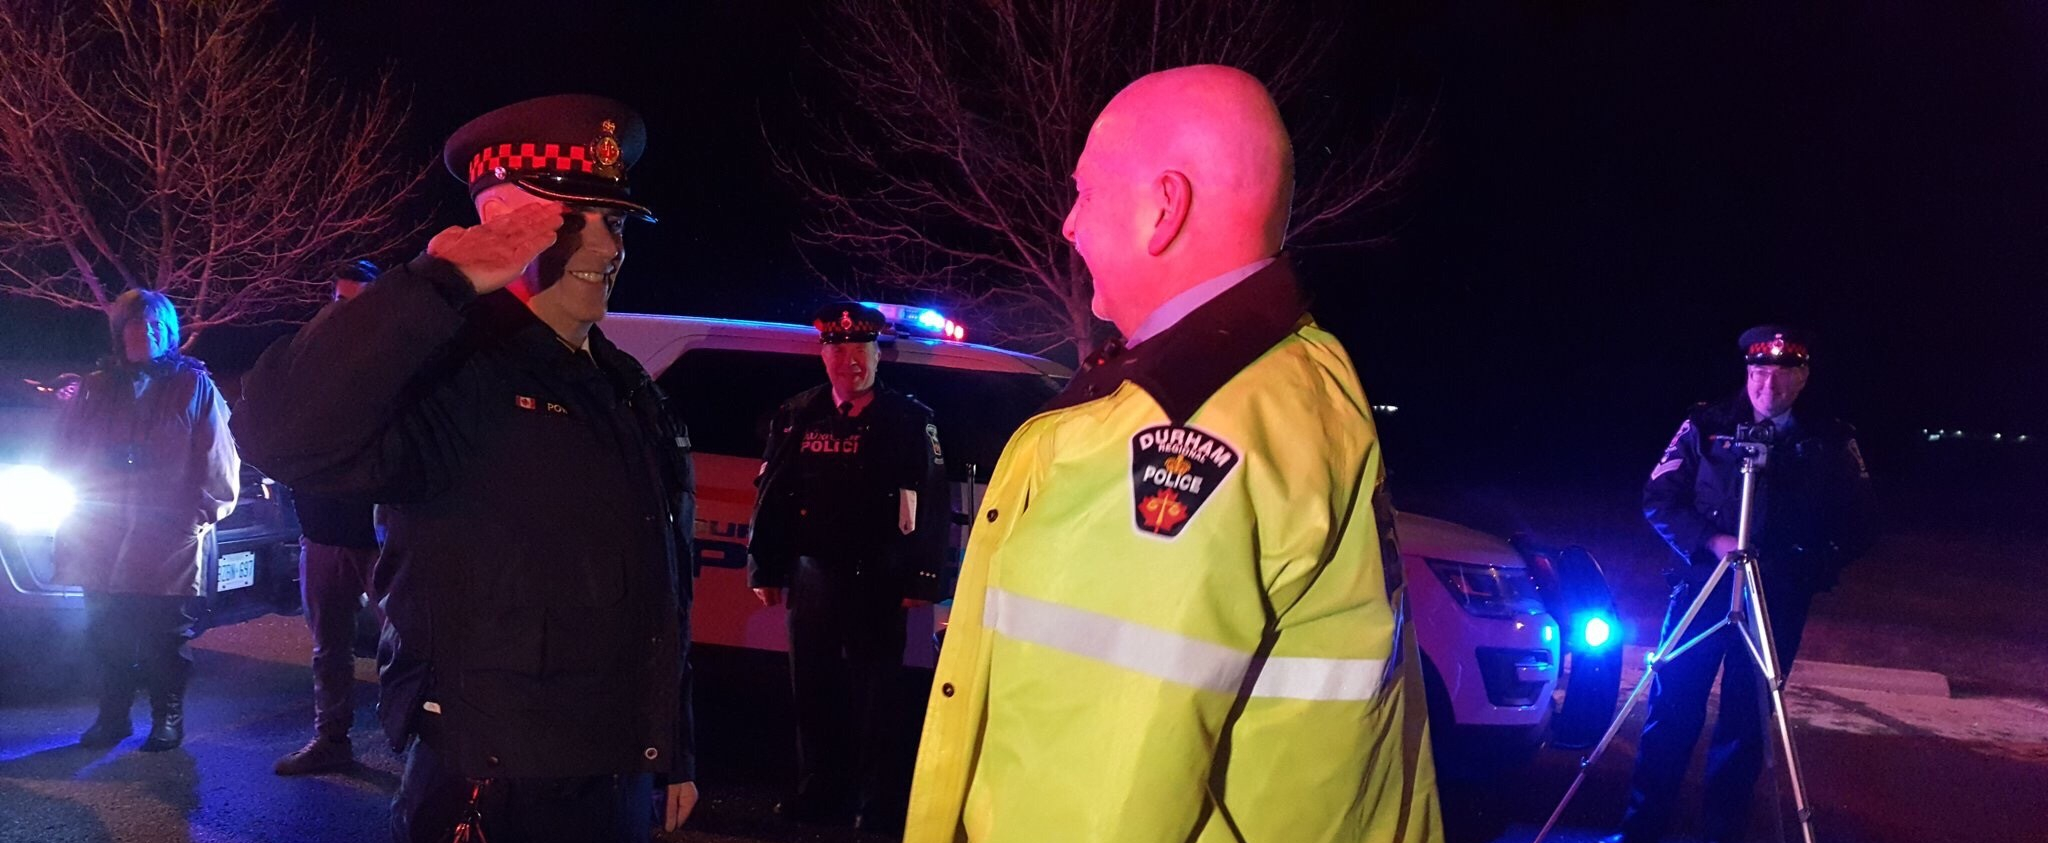 Auxiliary officer gets send-off in Sunderland